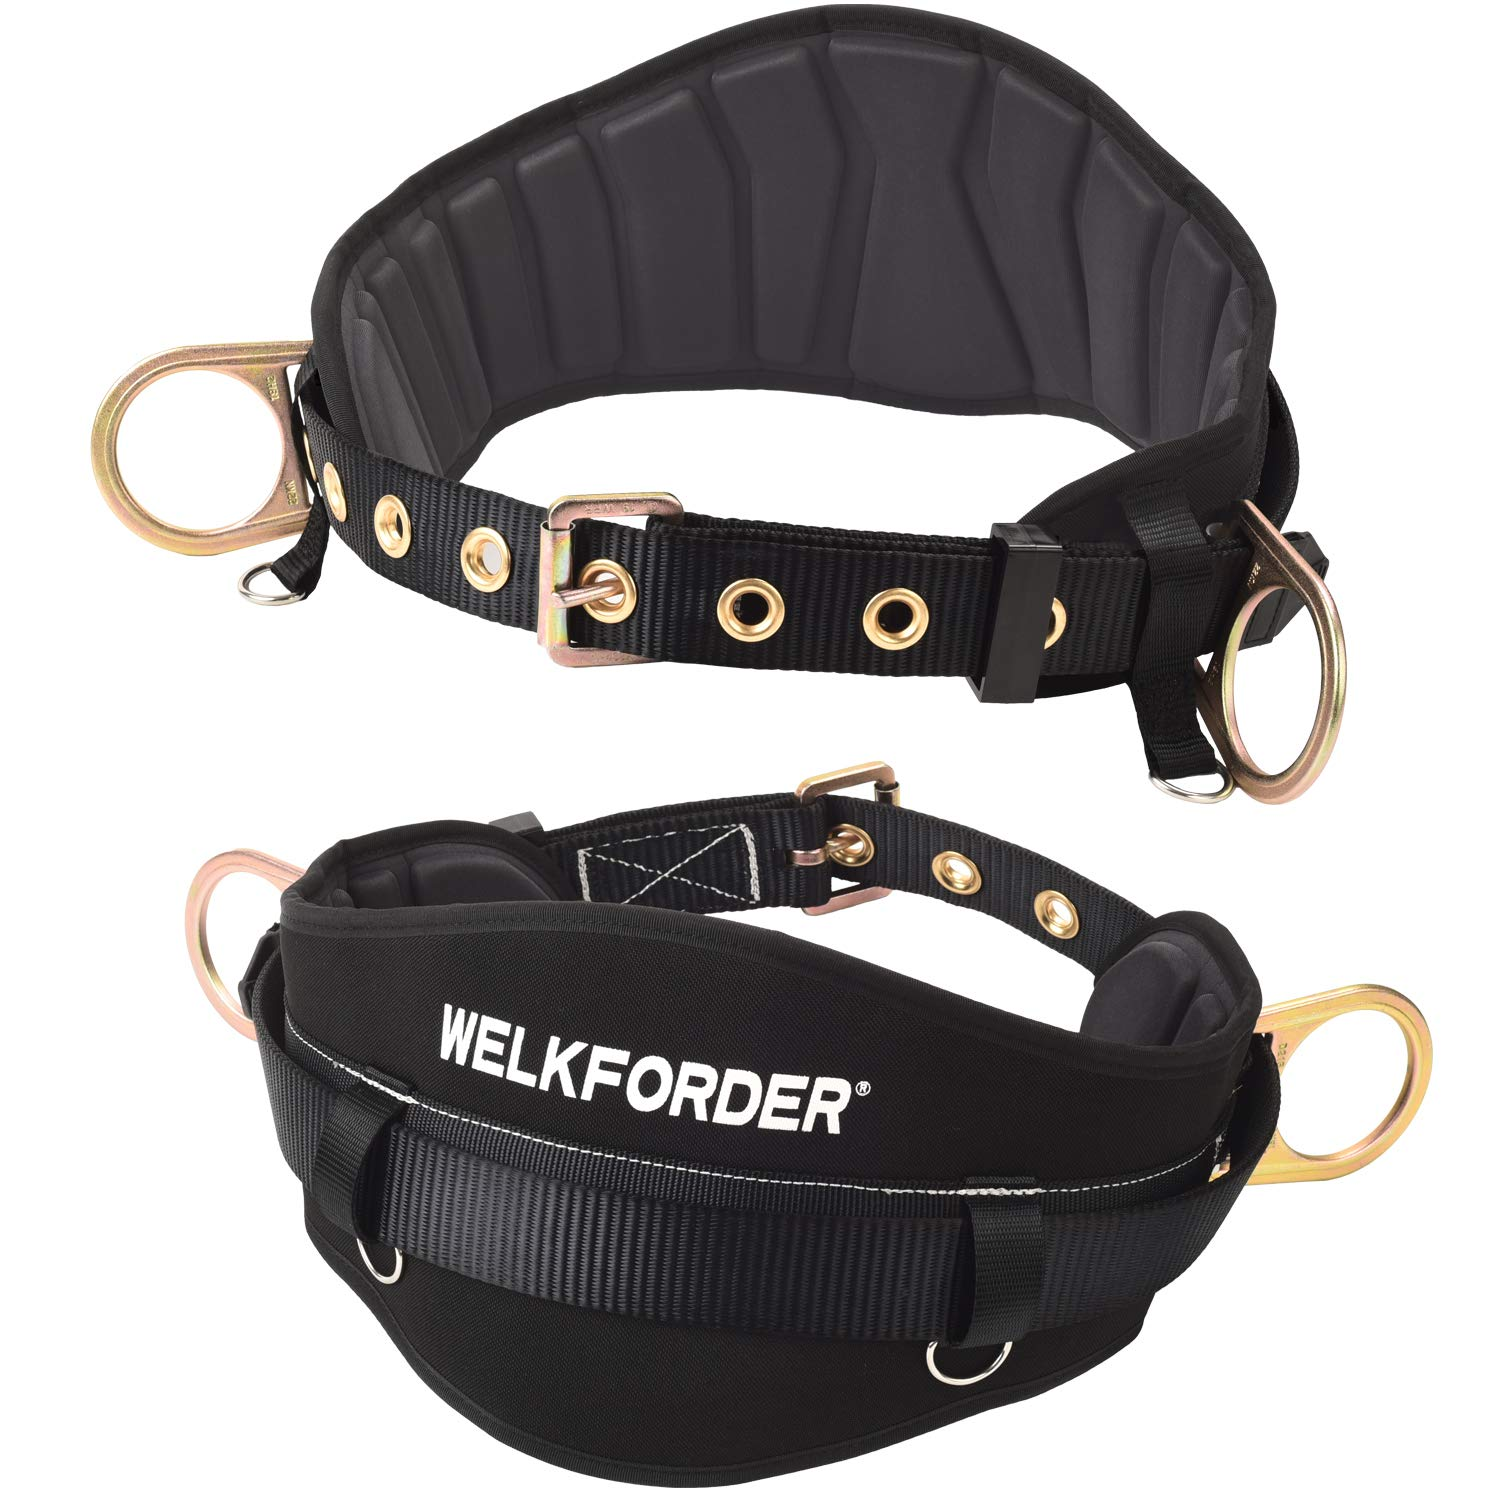 WELKFORDER Tongue Buckle Body Belt With Hot-Pressing Waist Pad and 2 Side D-Rings Personal Protective Equipment Safety Harness | Waist Fitting Size 32'' to 46'' for Work Positioning, Restraint